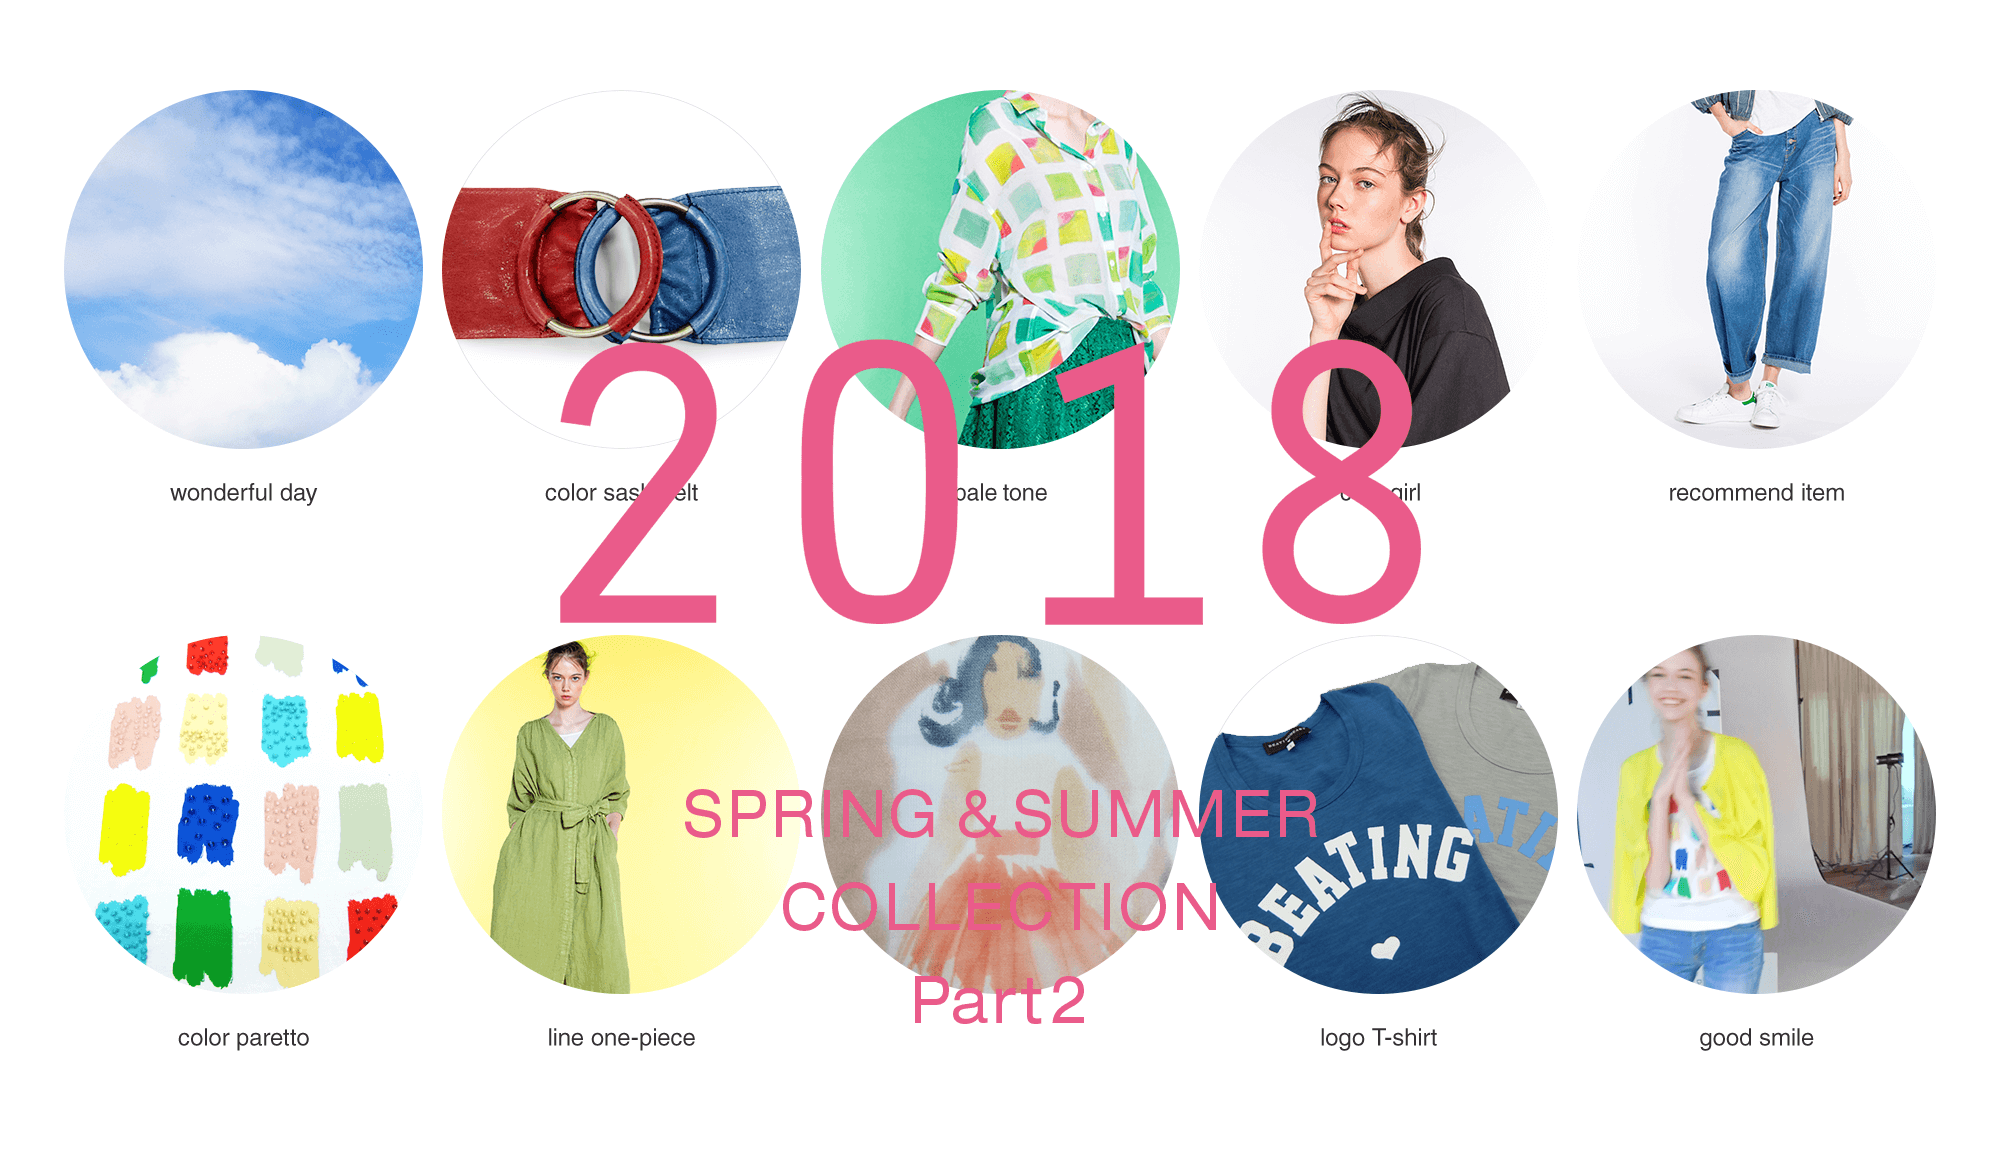 BEATING HEART 2018 SPRING & SUMMER COLLECTION Part2